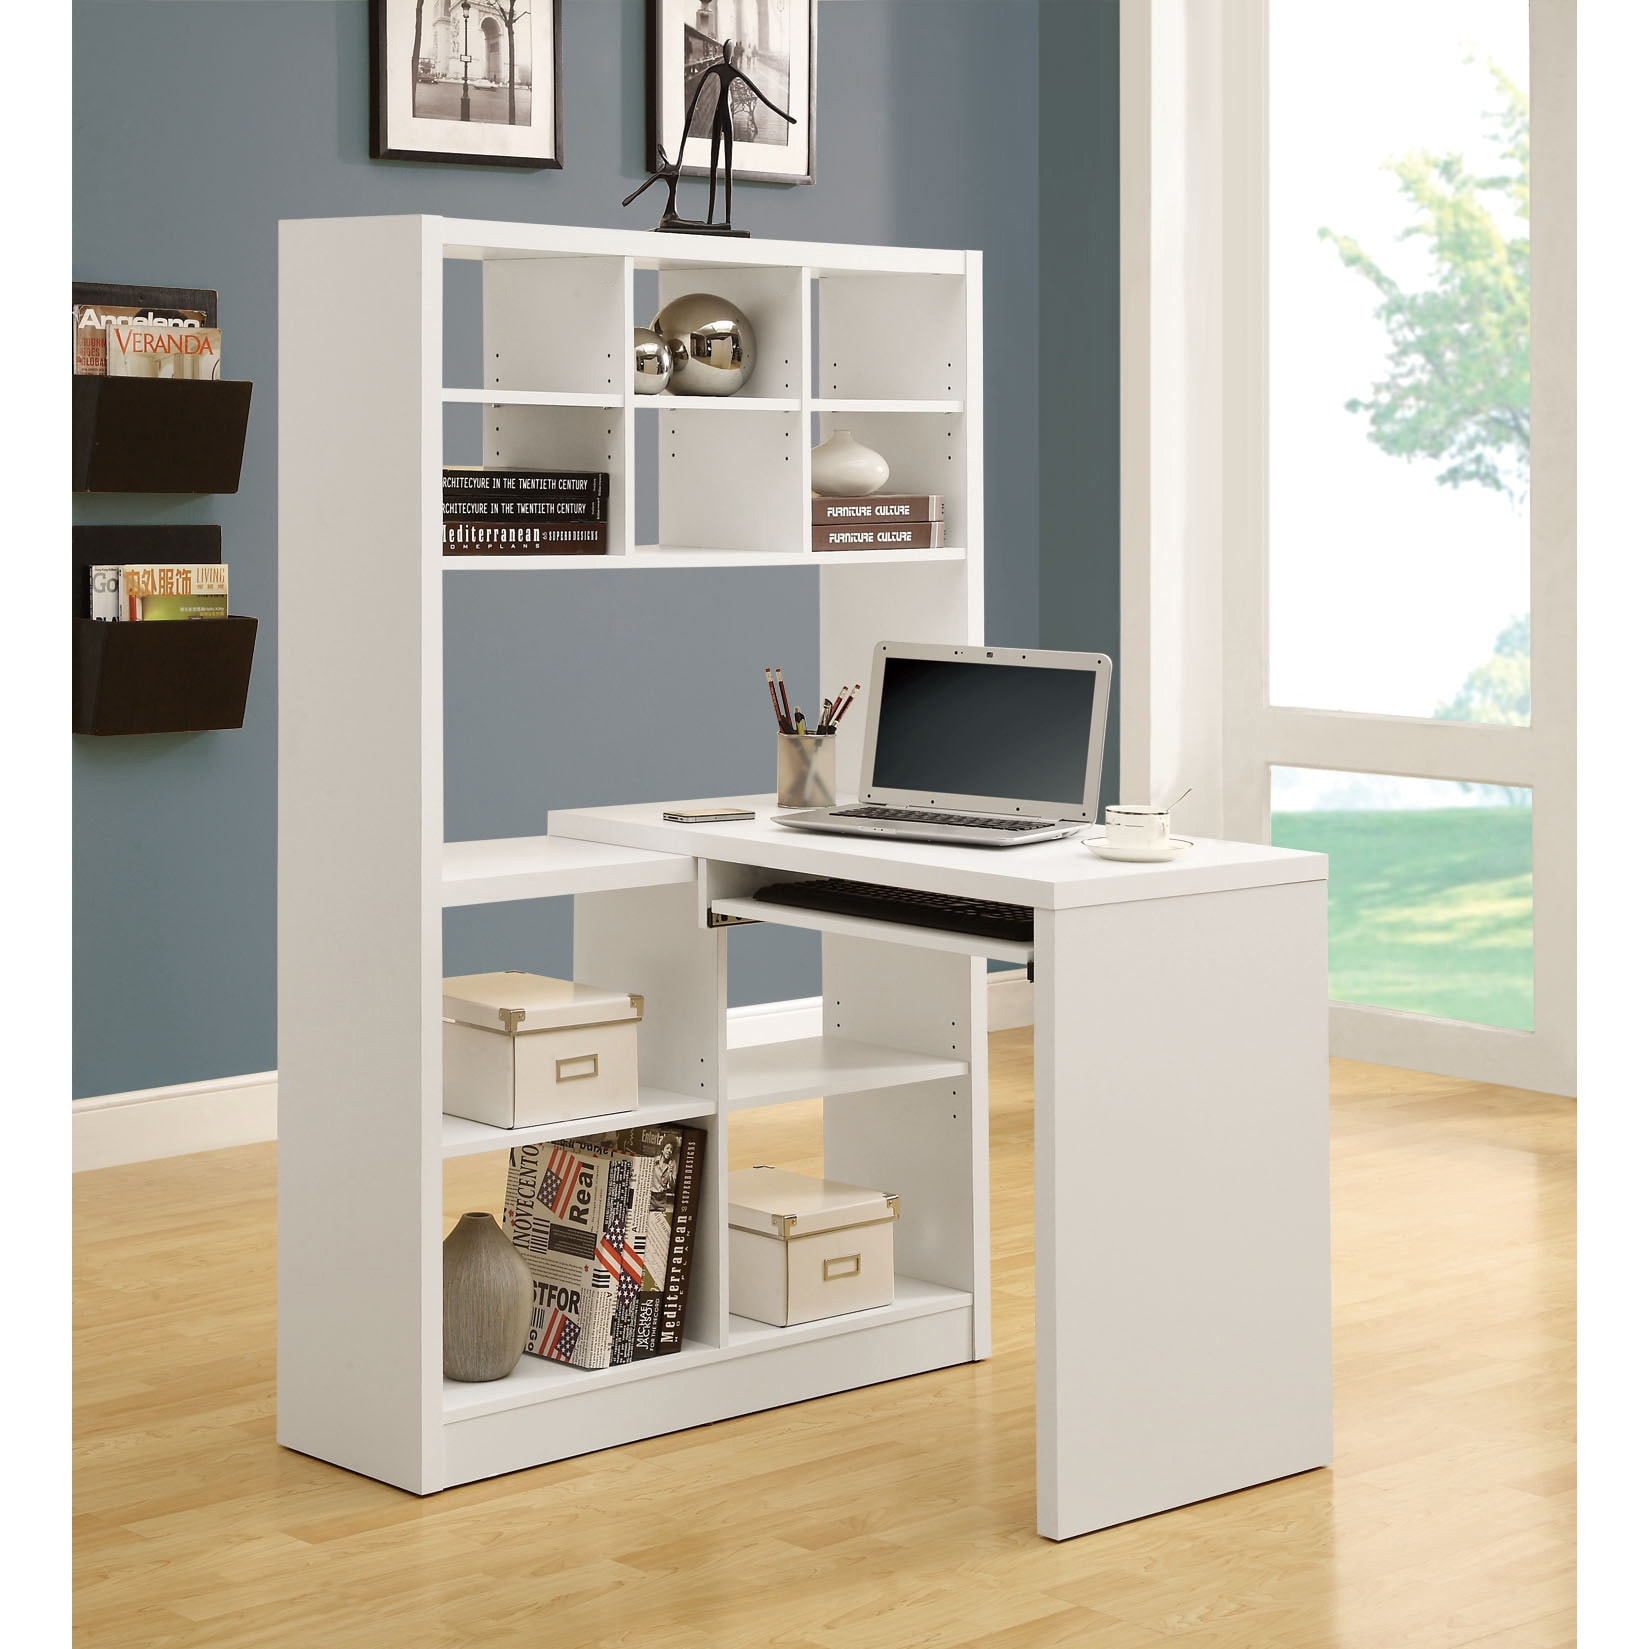 White Hollow-core Corner Desk - 14528072 - Overstock.com Shopping